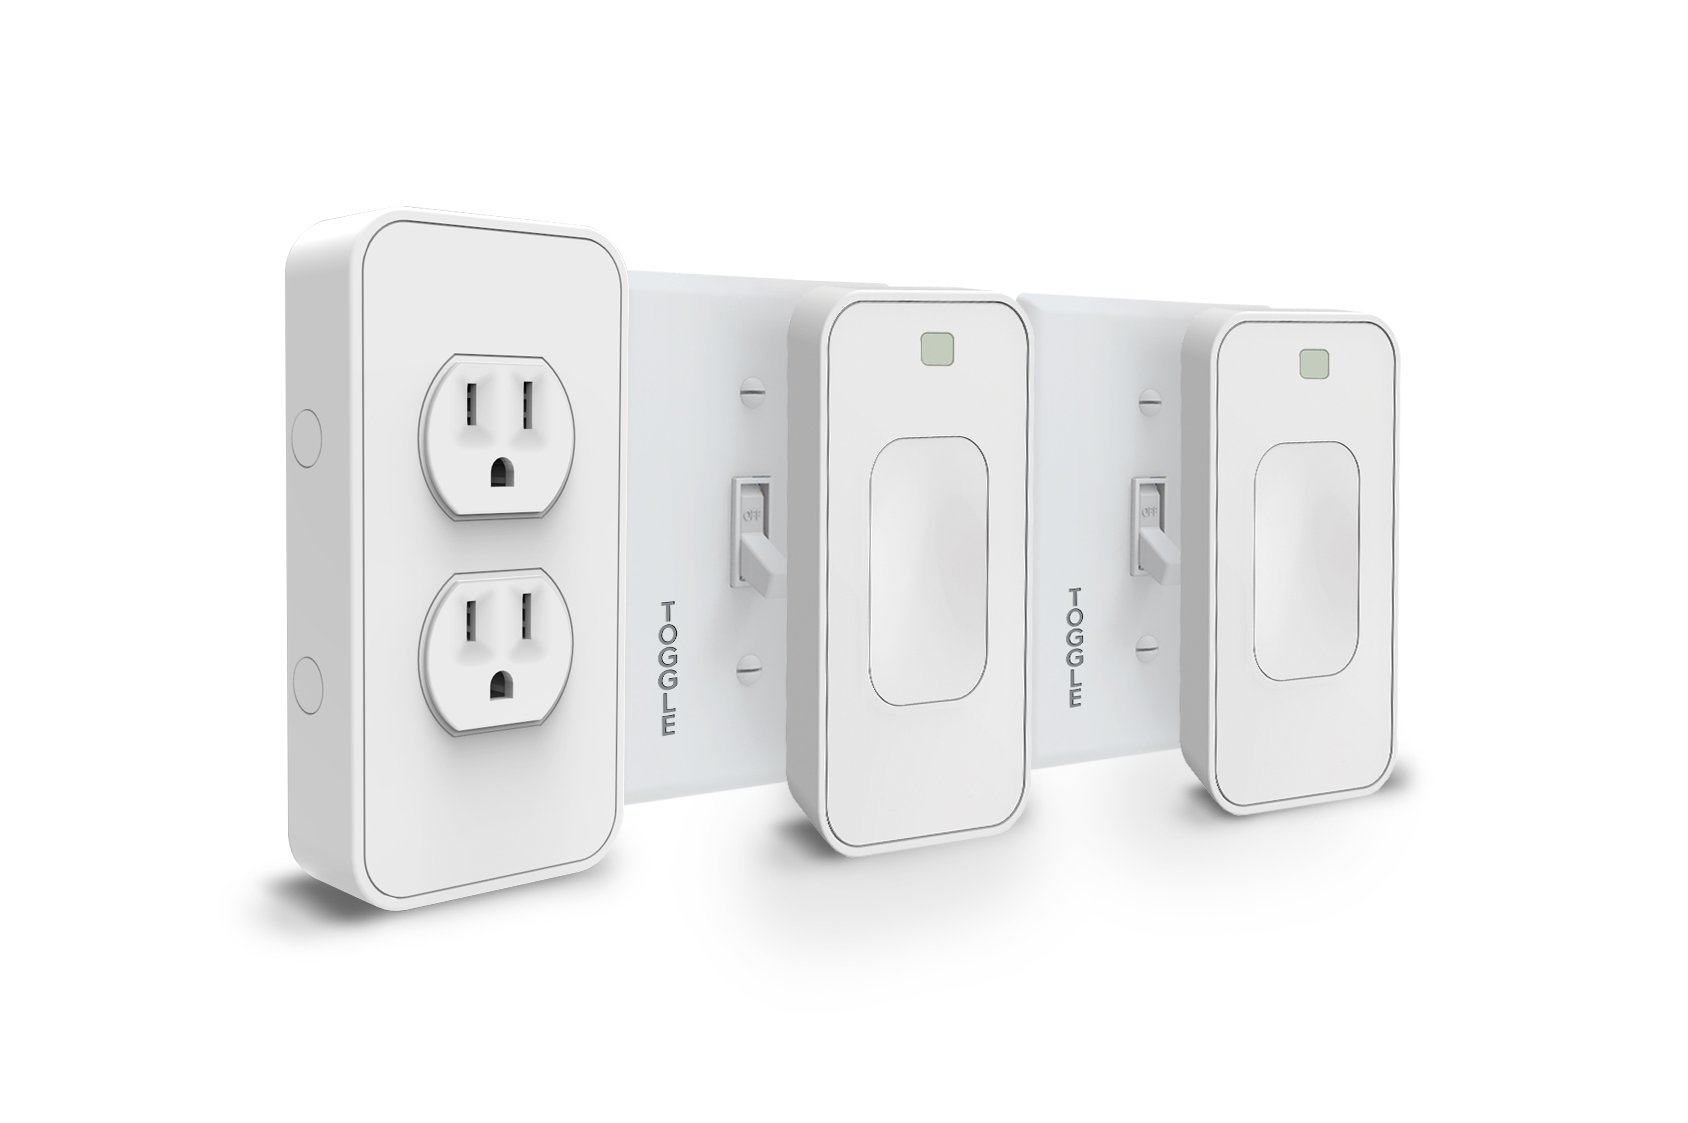 Switchmate Snap-On Smart Light Switch and Instant Smart Power Outlet That Listen - SKLPP00T7 Toggle Kit